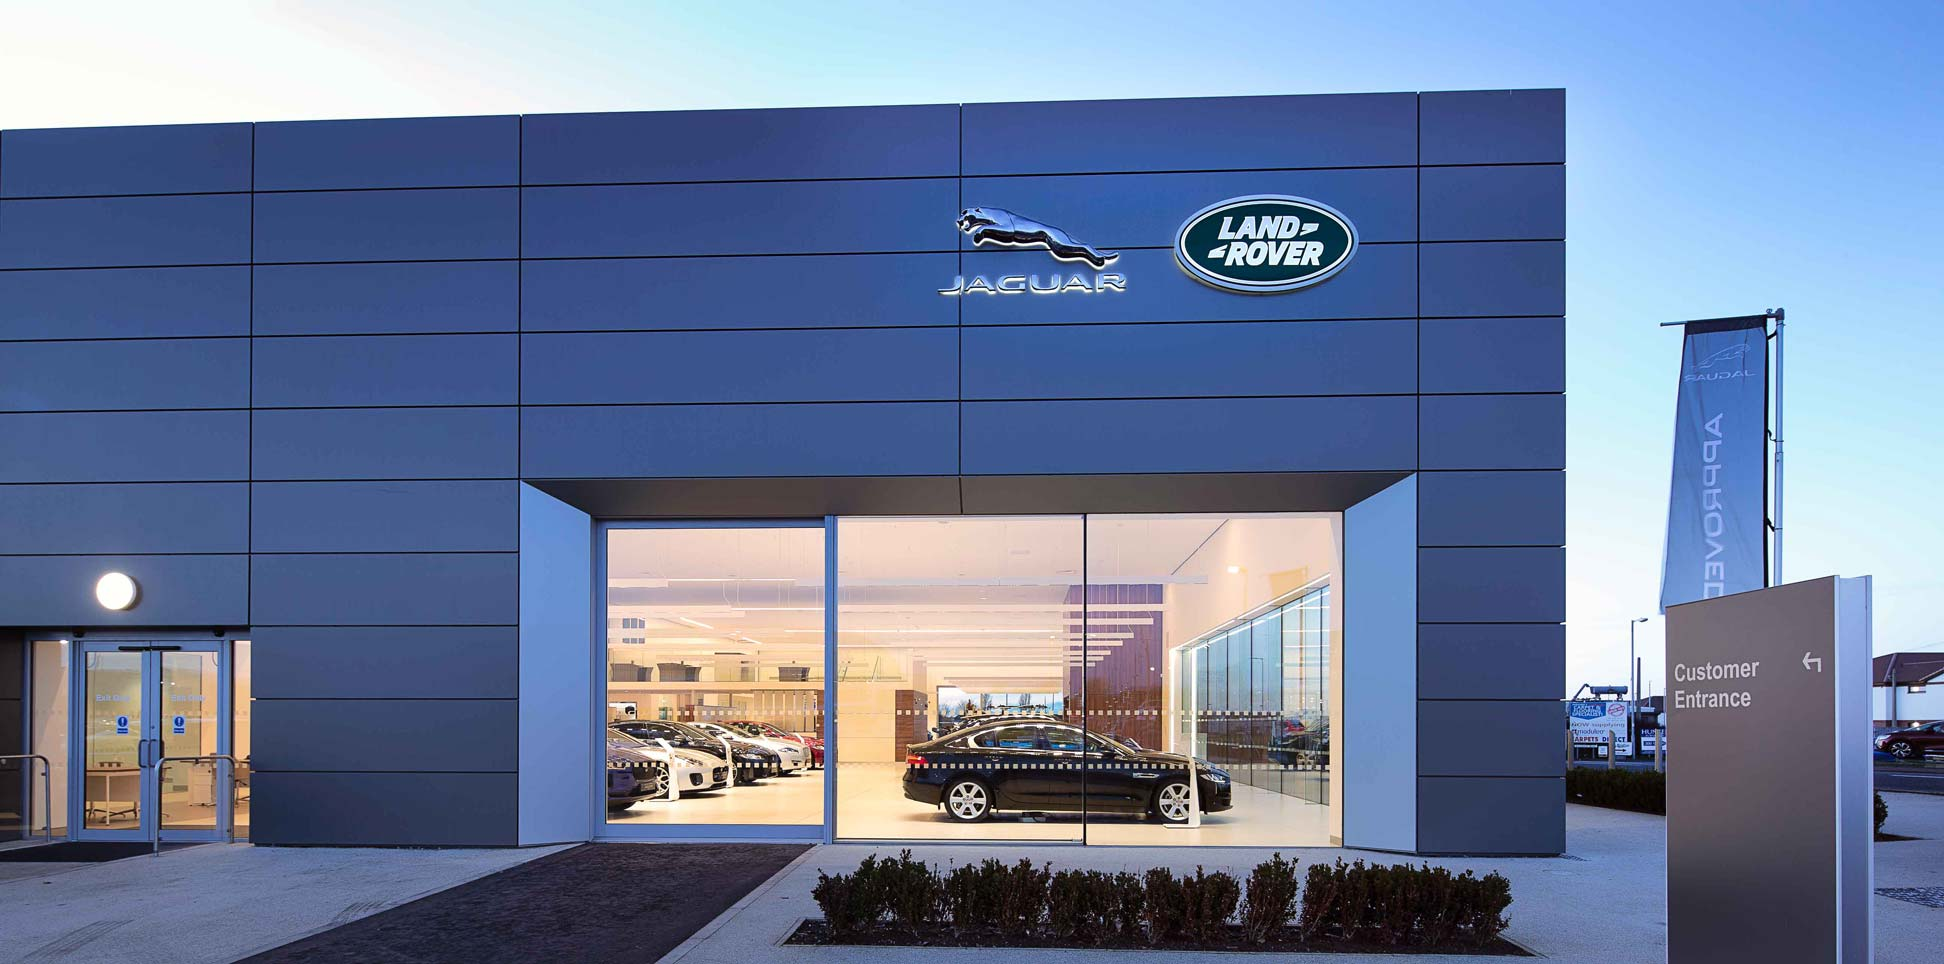 Jaguar Land Rover Arch Dealership, Ayr. Photography by James Thompson